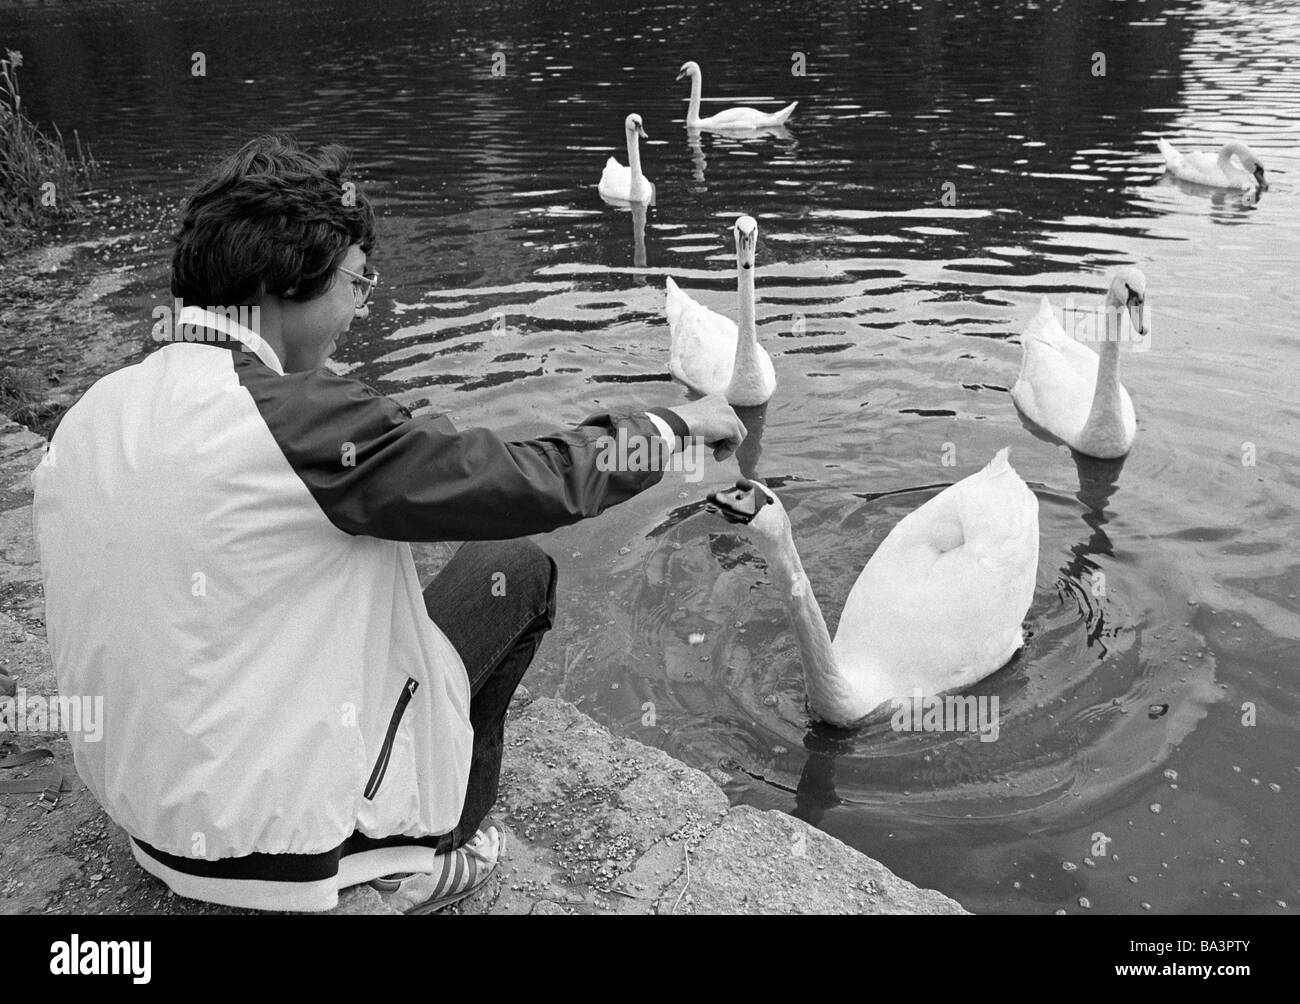 Eighties, black and white photo, human and animal, boy feeds swans on a lake, aged 14 to 17 years, Mute swan, Cygnus - Stock Image